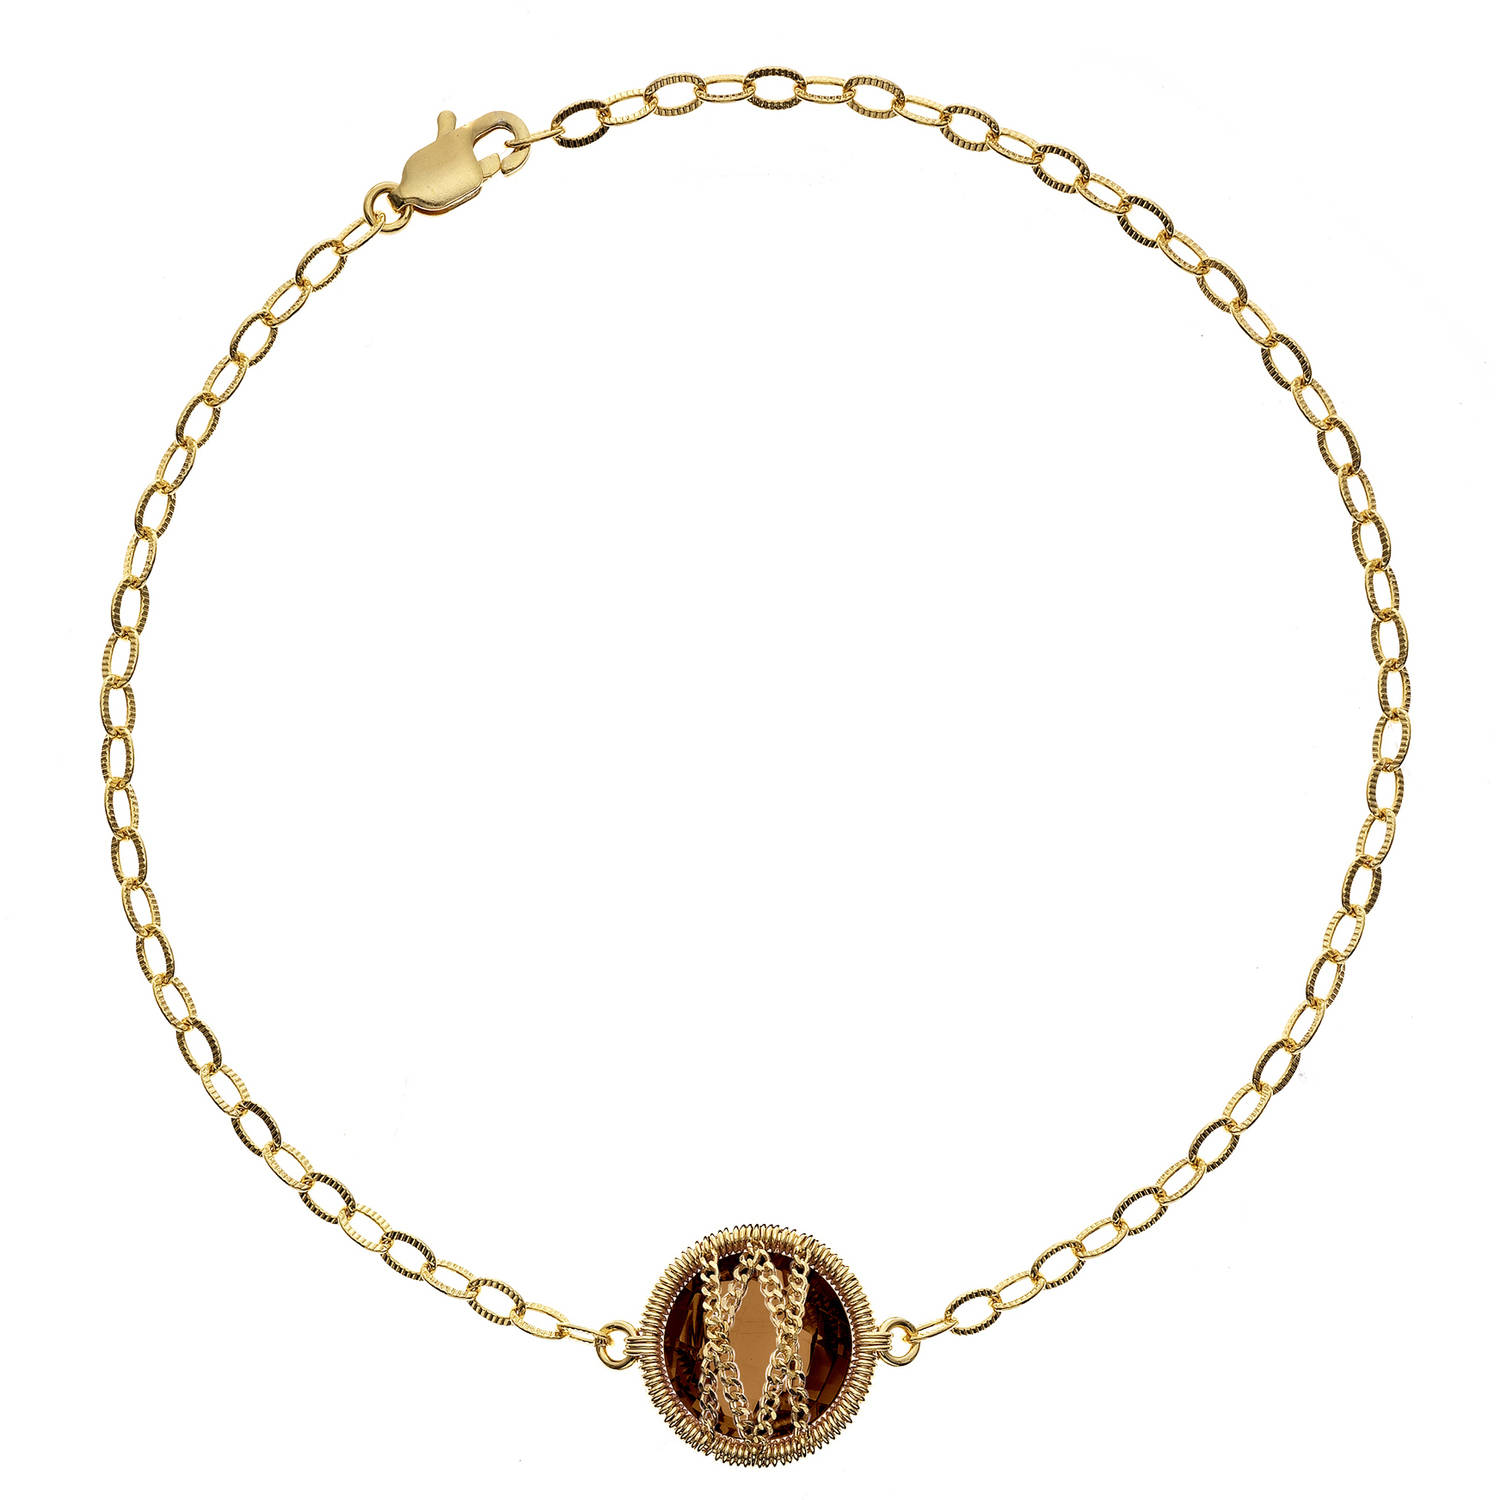 Image of 5th & Main 18kt Gold over Sterling Silver Hand-Wrapped Single Round Smokey Quartz Stone Bracelet